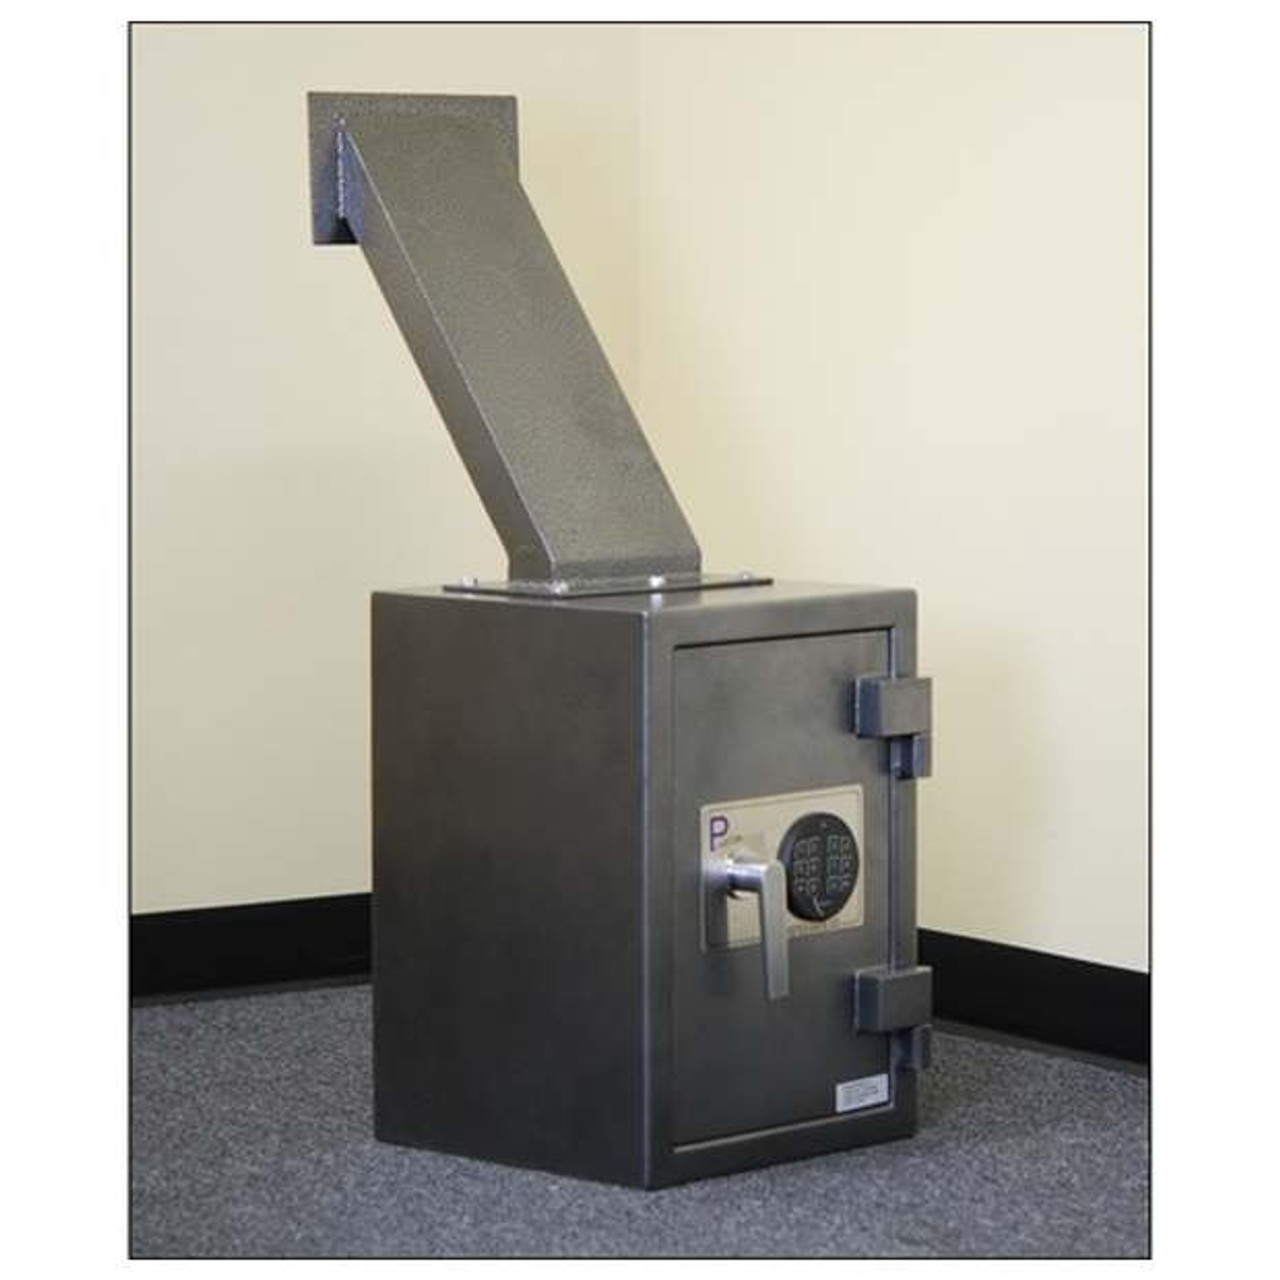 Through Wall Payment Drop Box With Chute Depository Safes